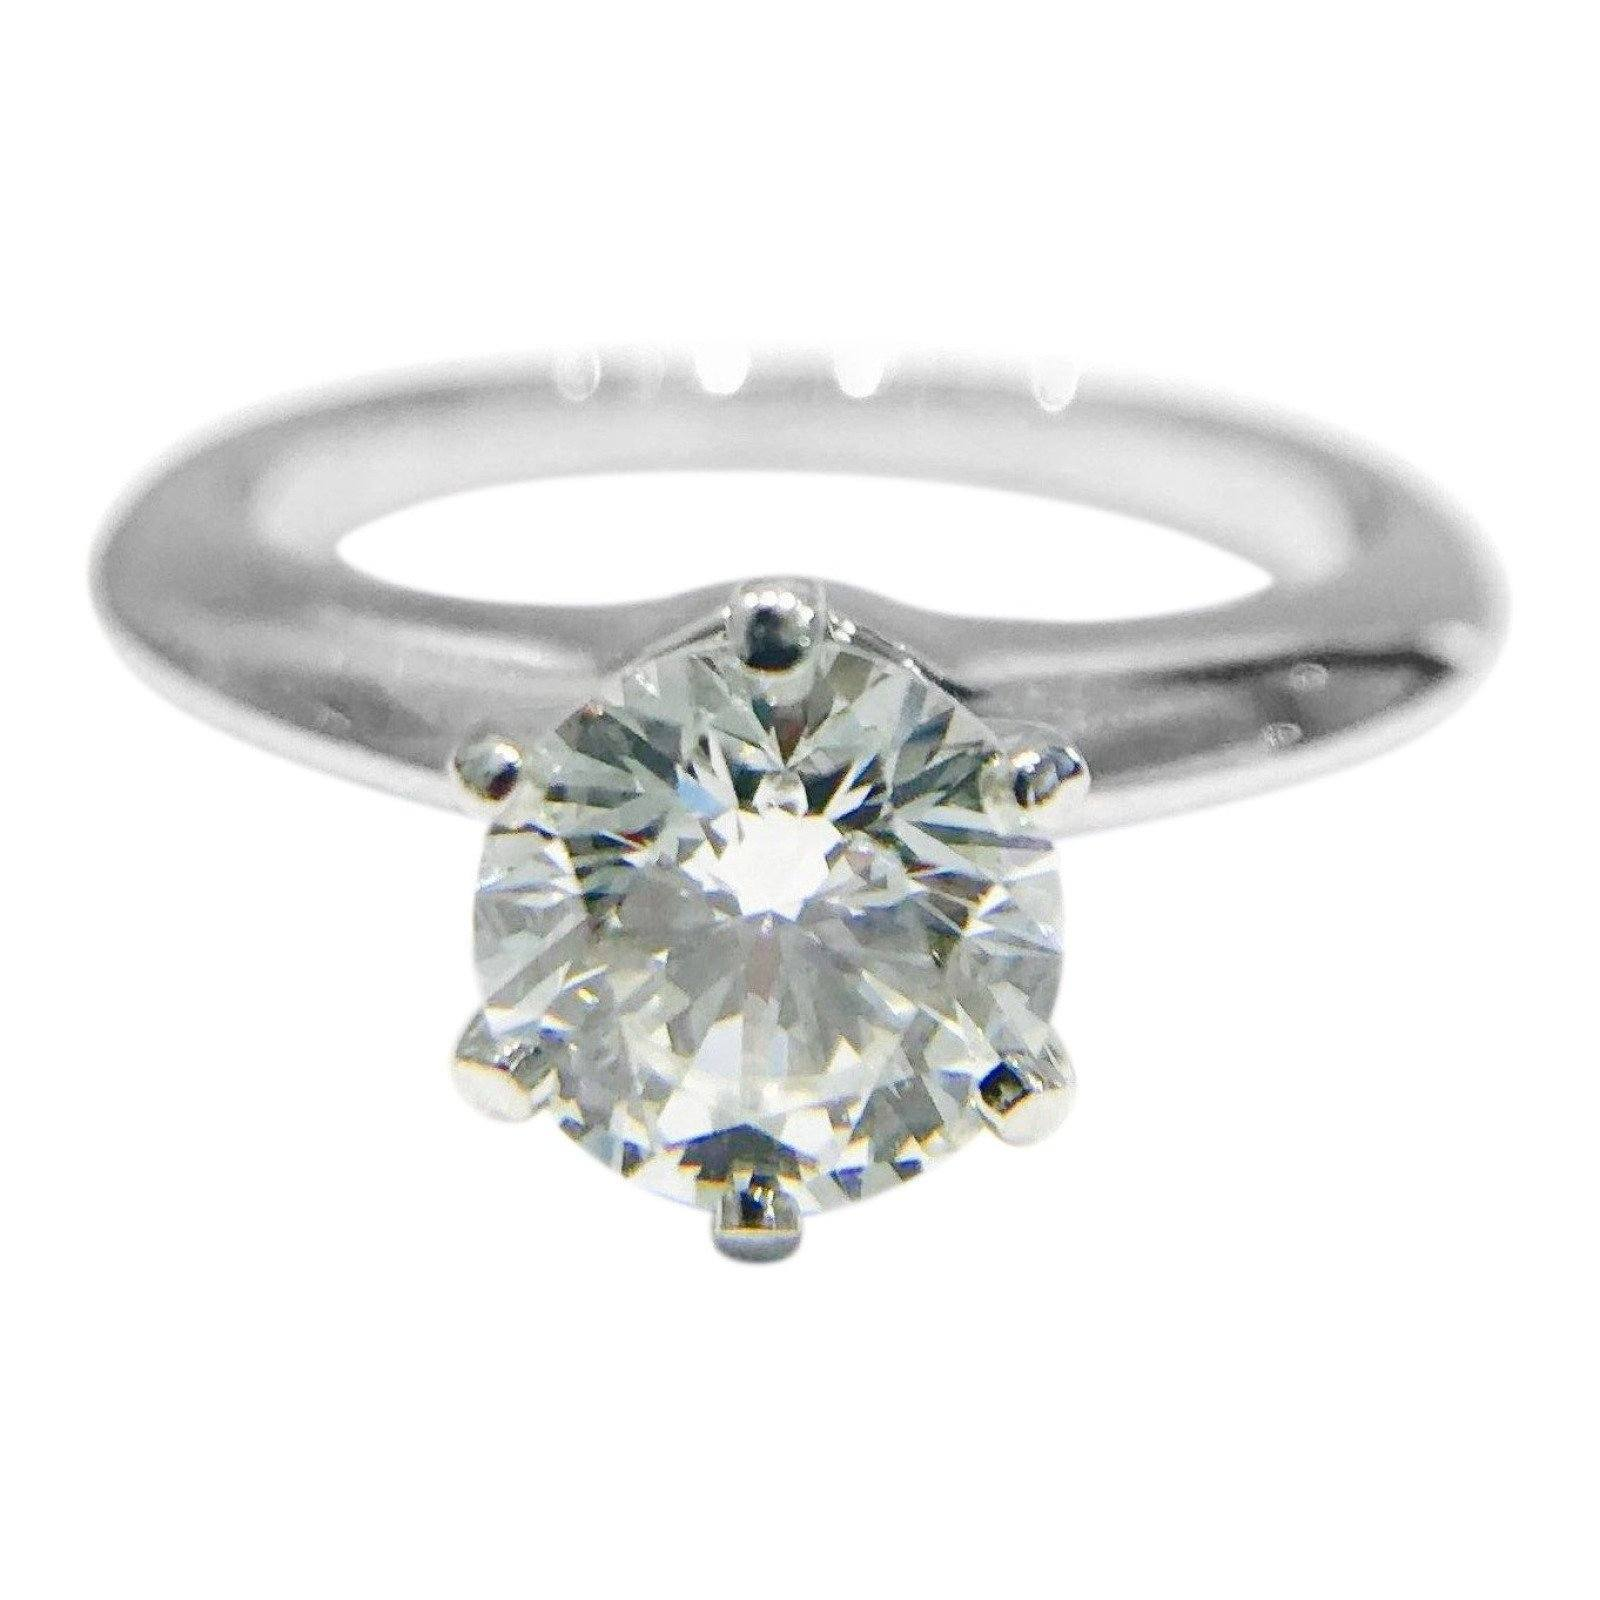 Tiffany Wedding Rings.Tiffany Co Solitaire 0 89ct Round Diamond Engagement Ring